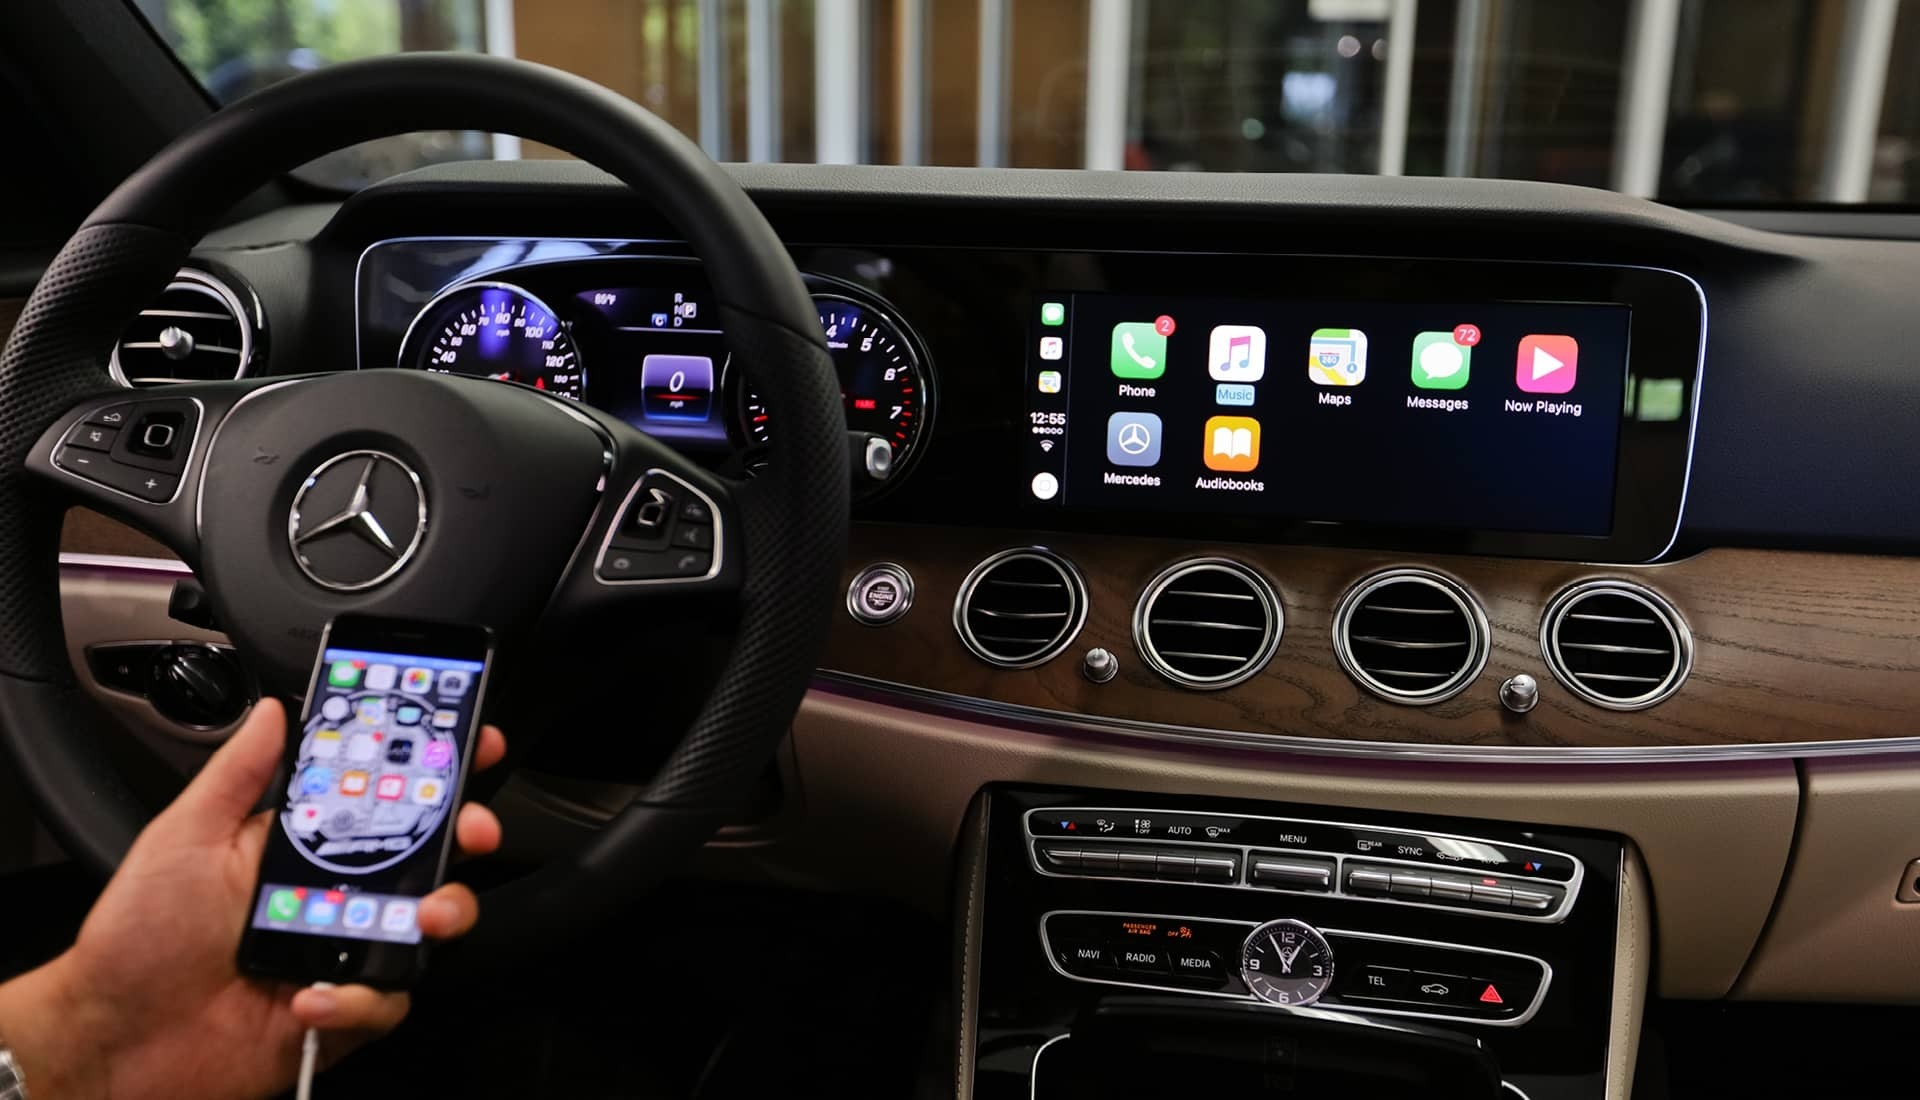 Apple carplay and android auto benefits and uses for for Mercedes benz apple carplay